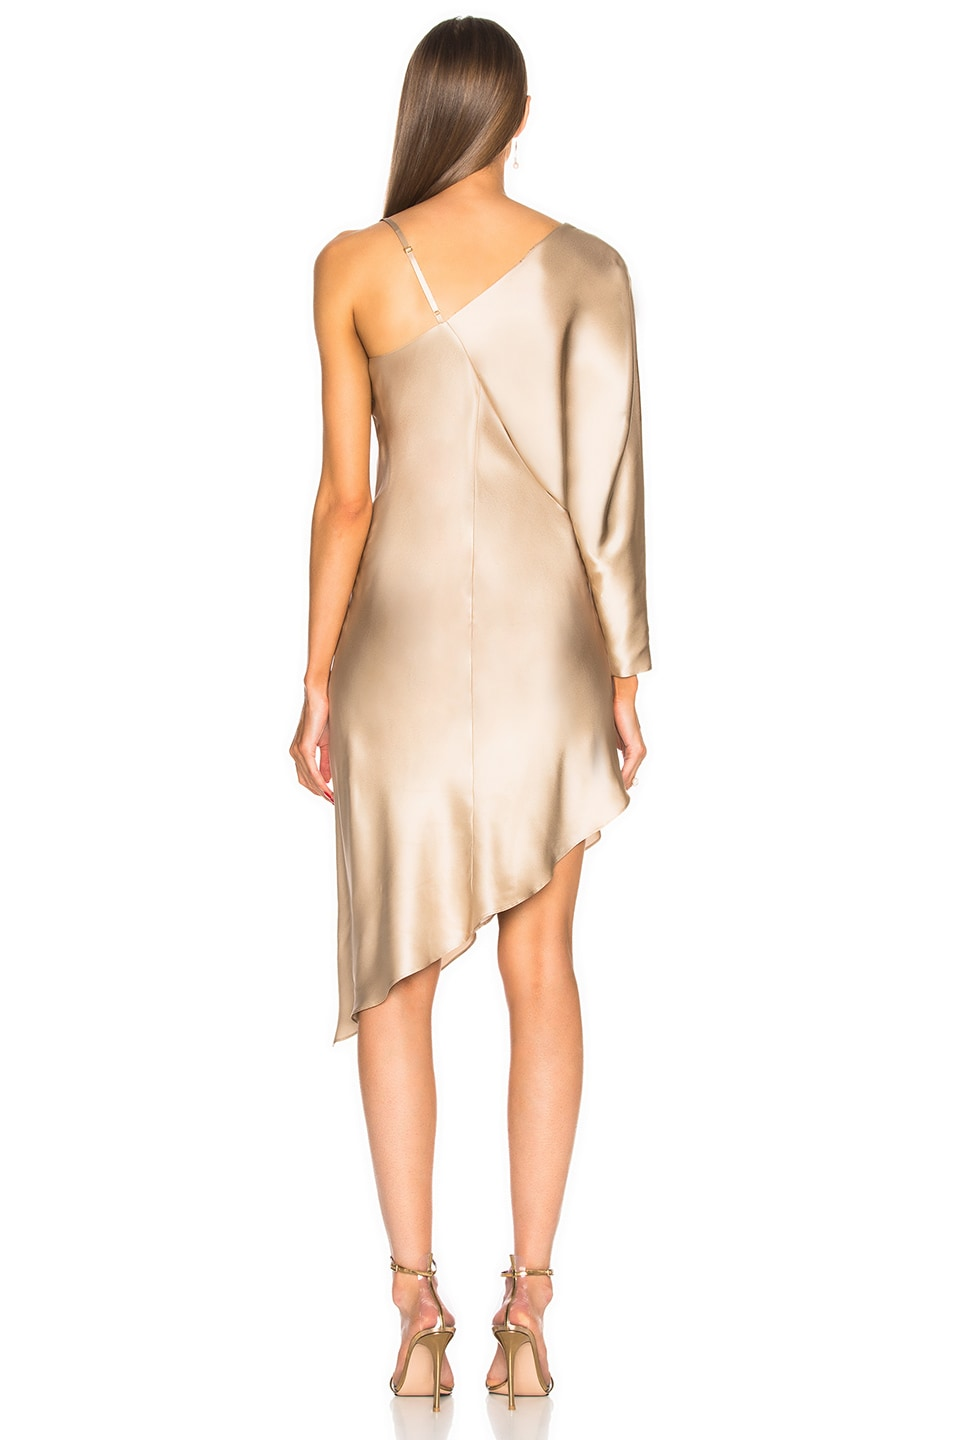 Image 4 of Michelle Mason for FWRD Asymmetrical One Shoulder Dress in Champagne